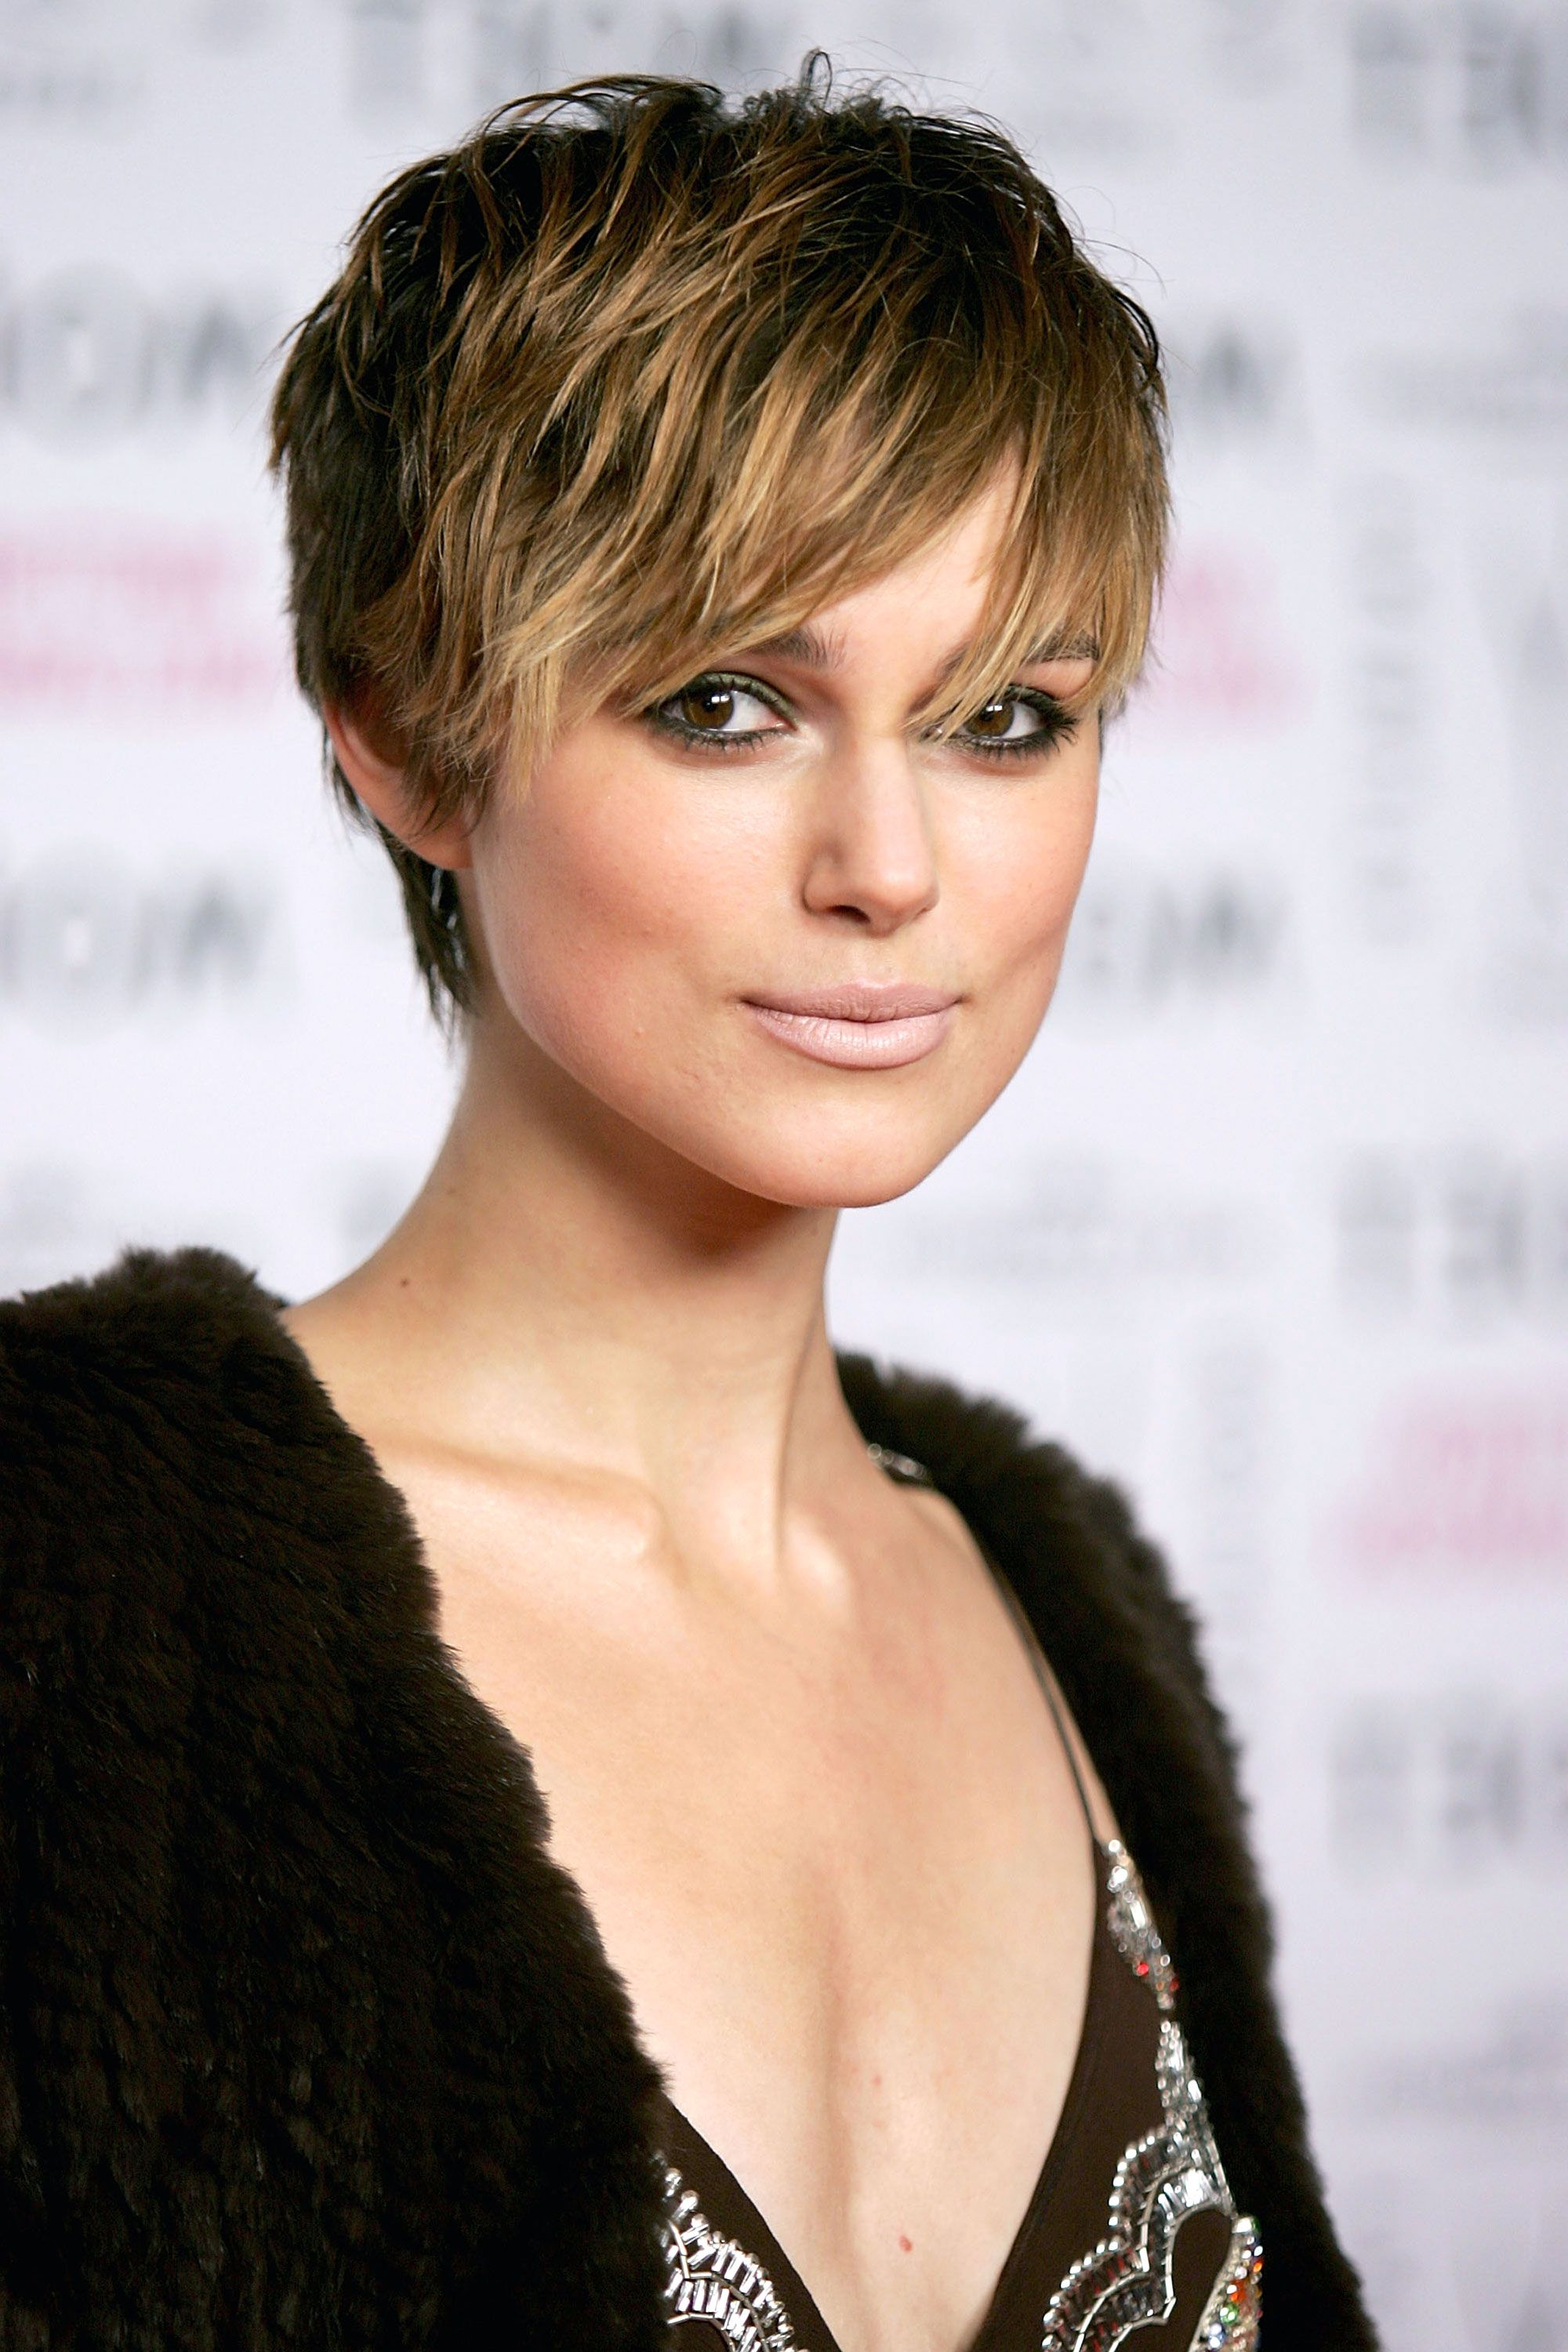 50+ Pixie Cuts We Love For 2018 – Short Pixie Hairstyles From For Summer Short Haircuts (View 7 of 25)